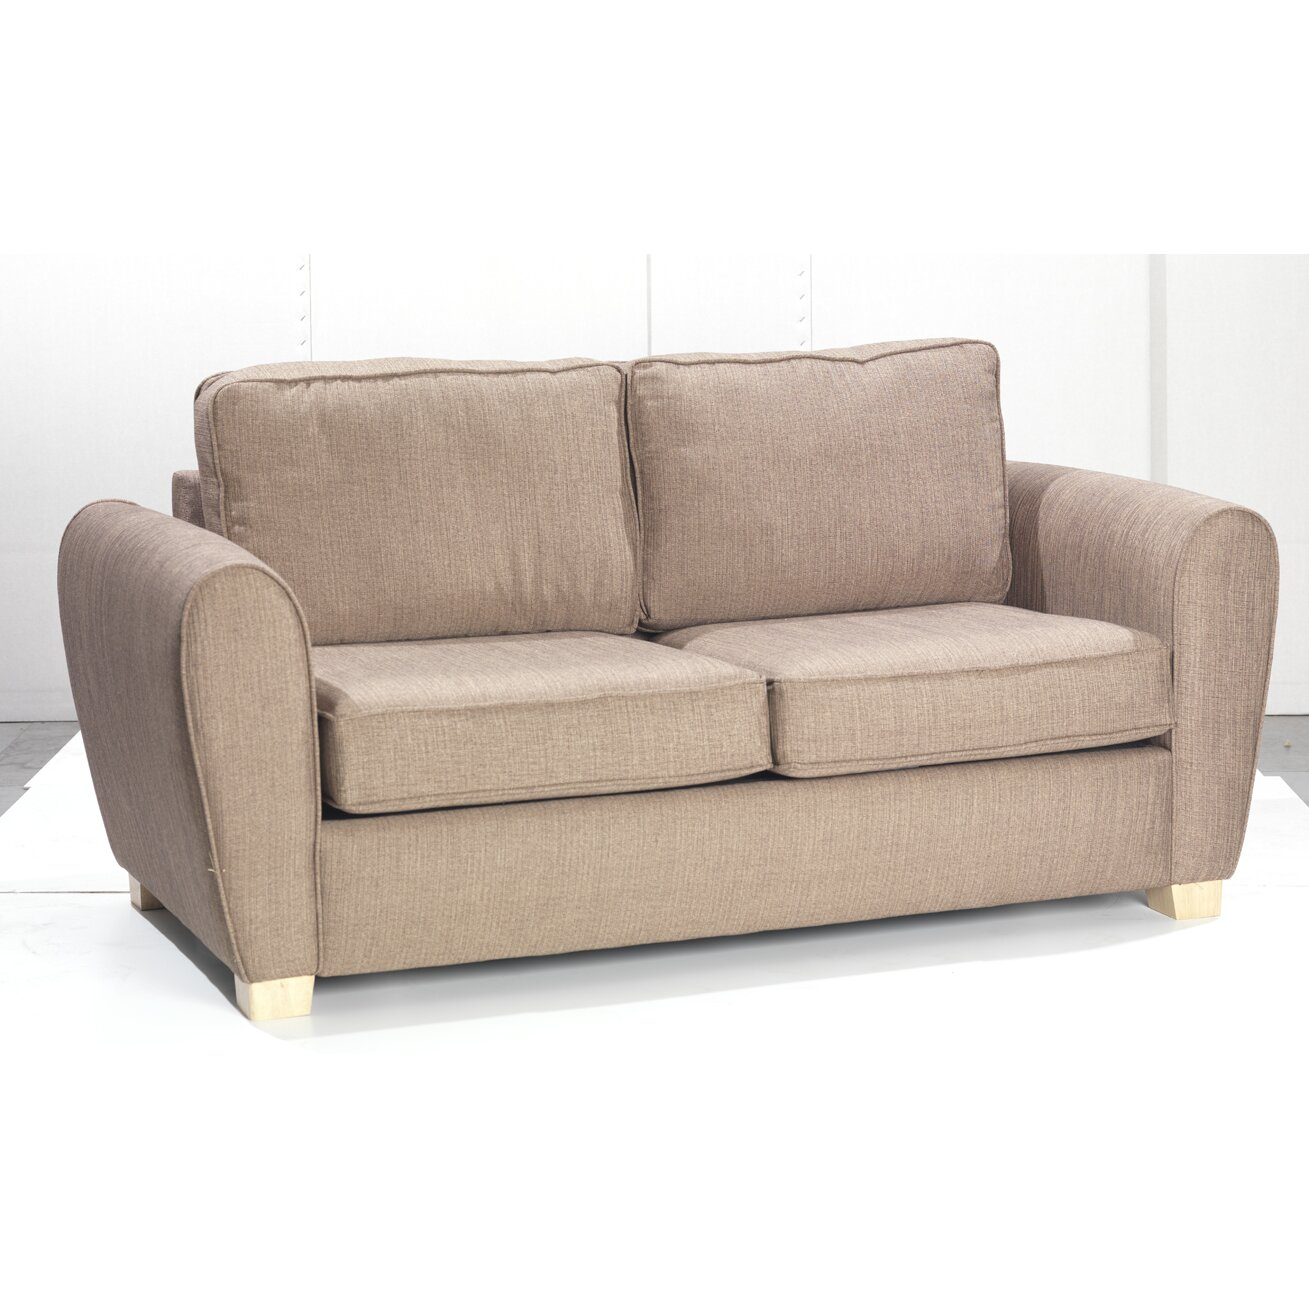 Fold Out Sofa wine fold out guest sofa z bed sleeping